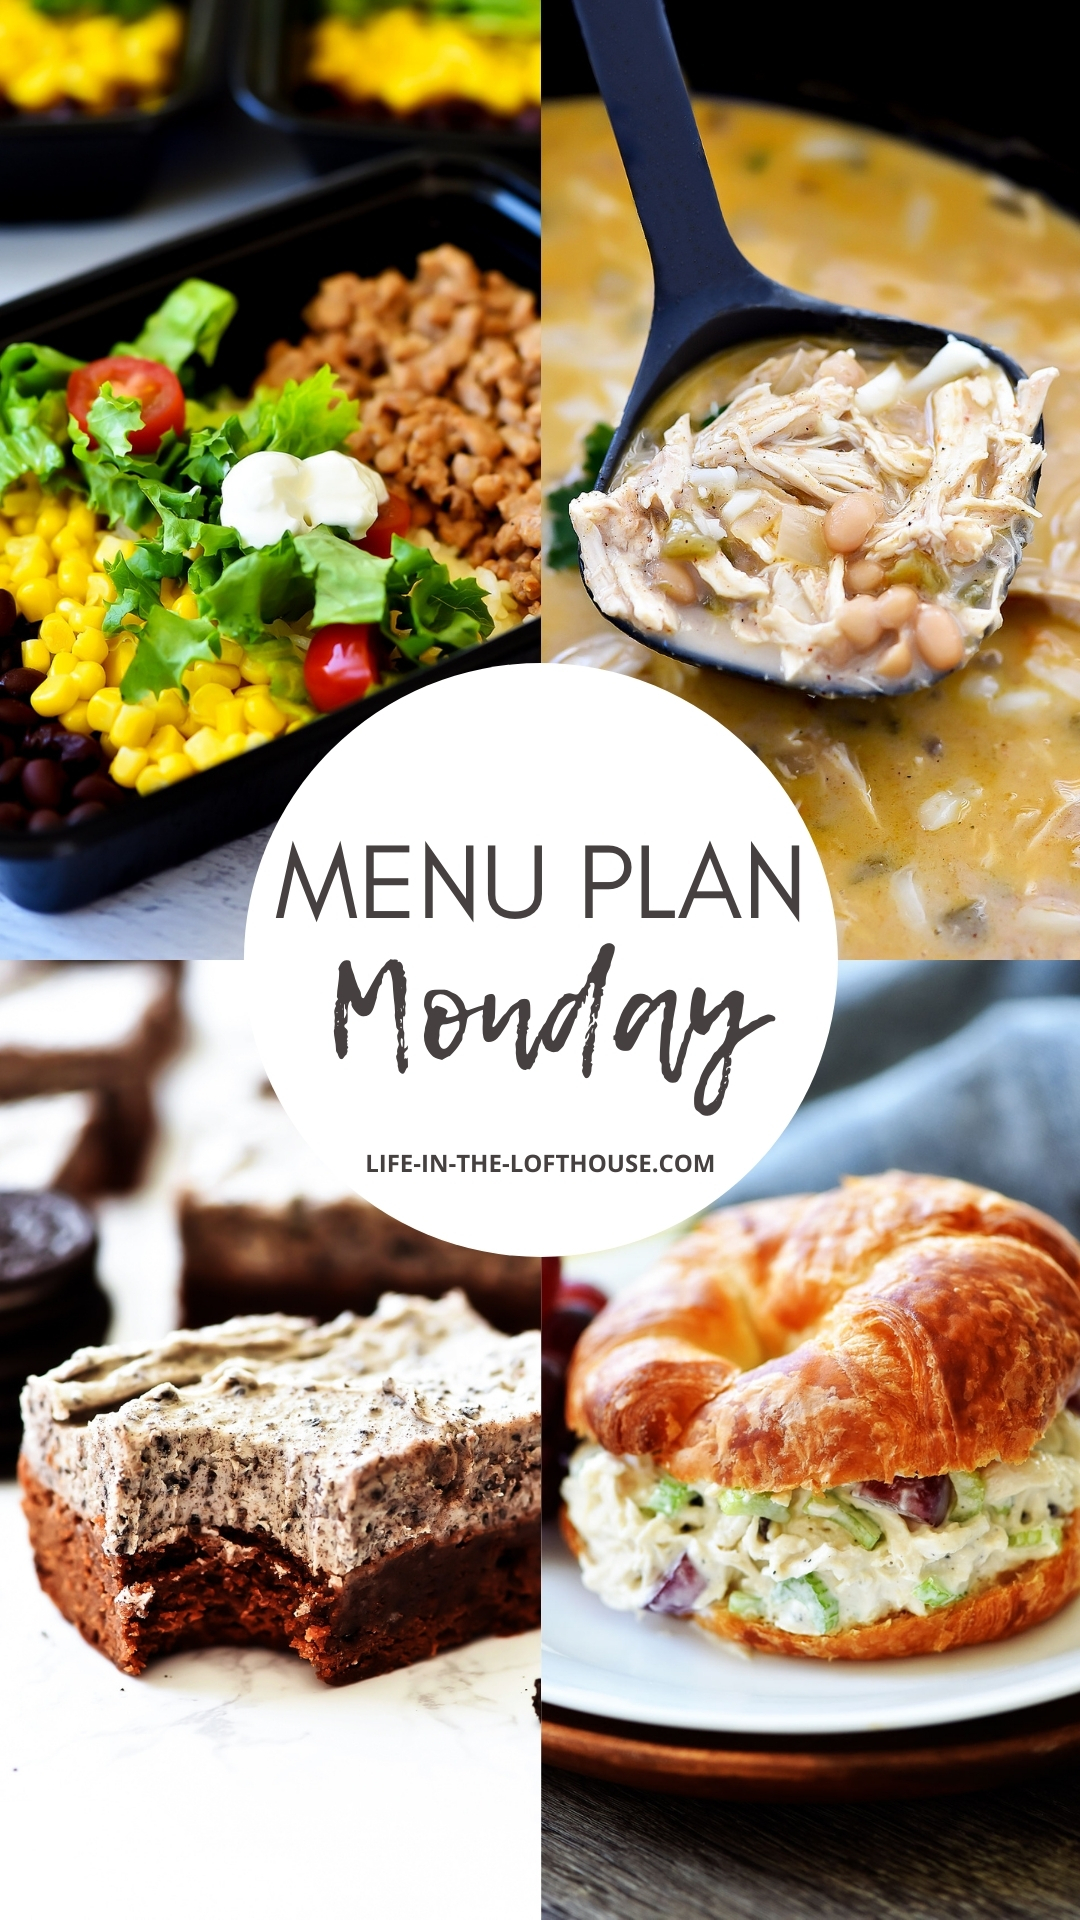 Menu Plan Monday is an easy guide to help you plan your dinners for the week. Each menu includes six dinner recipes and one dessert.